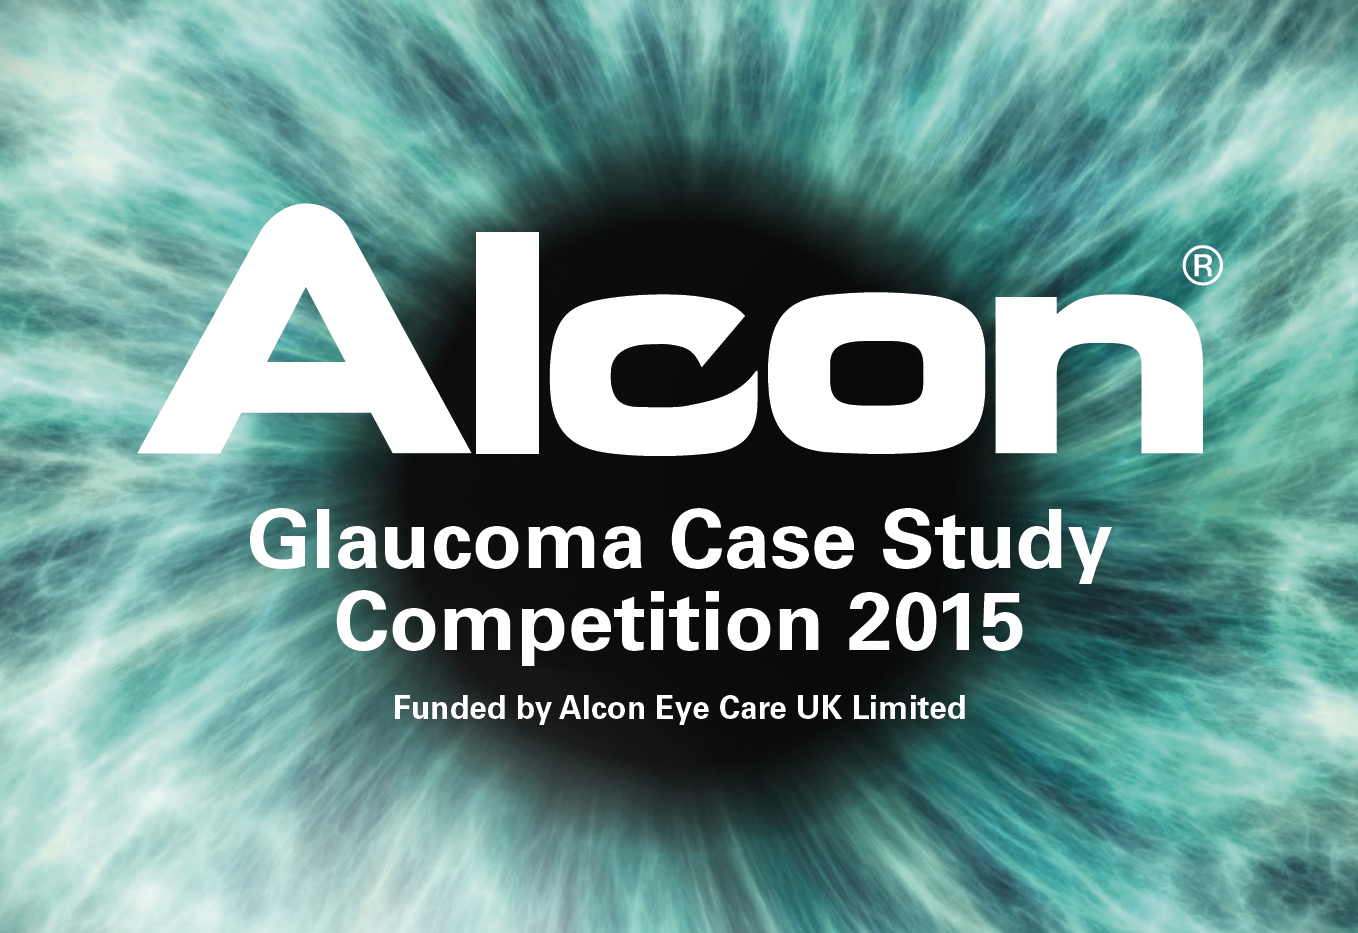 alcon-2015-glaucoma-case-study-competition-image